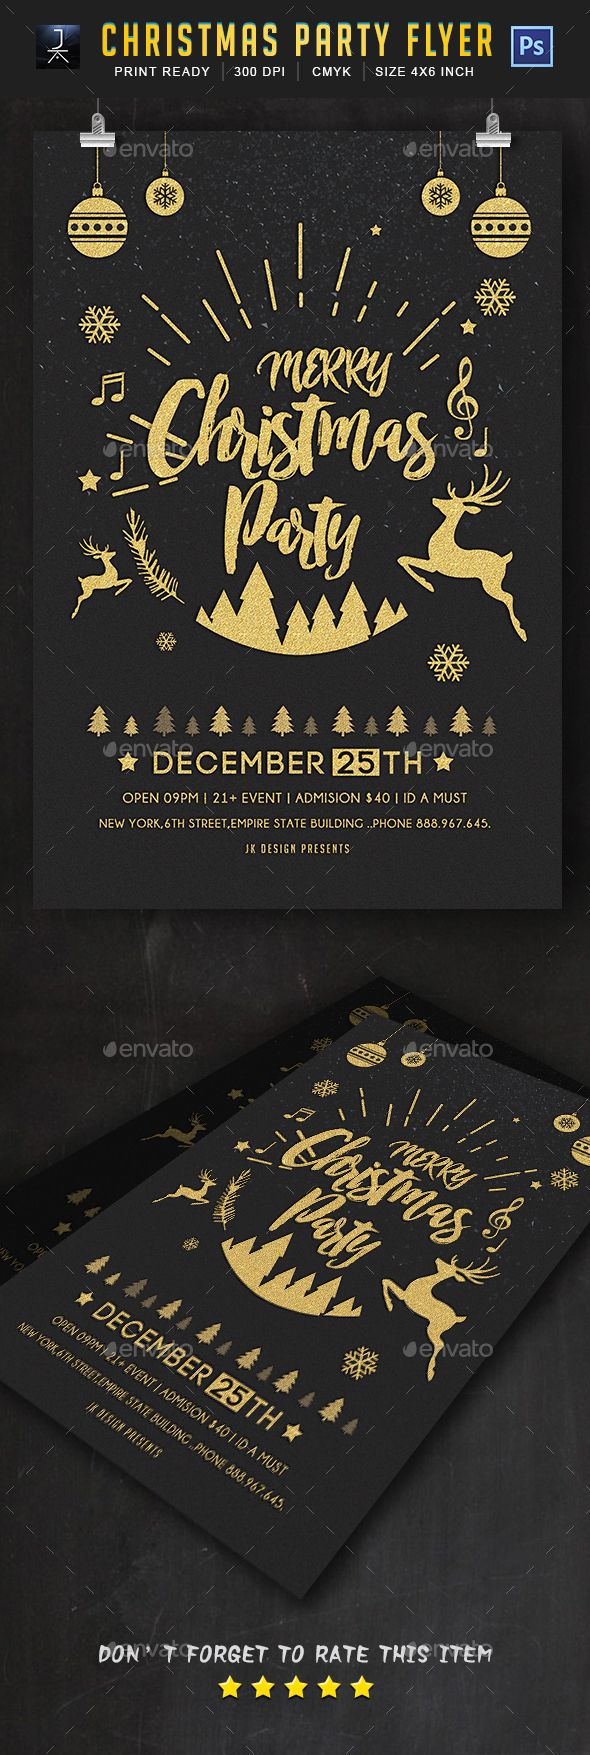 Christmas Flyer — Photoshop PSD #christmas tree #new year • Download ➝ https://graphicriver.net/item/christmas-flyer/18980362?ref=pxcr